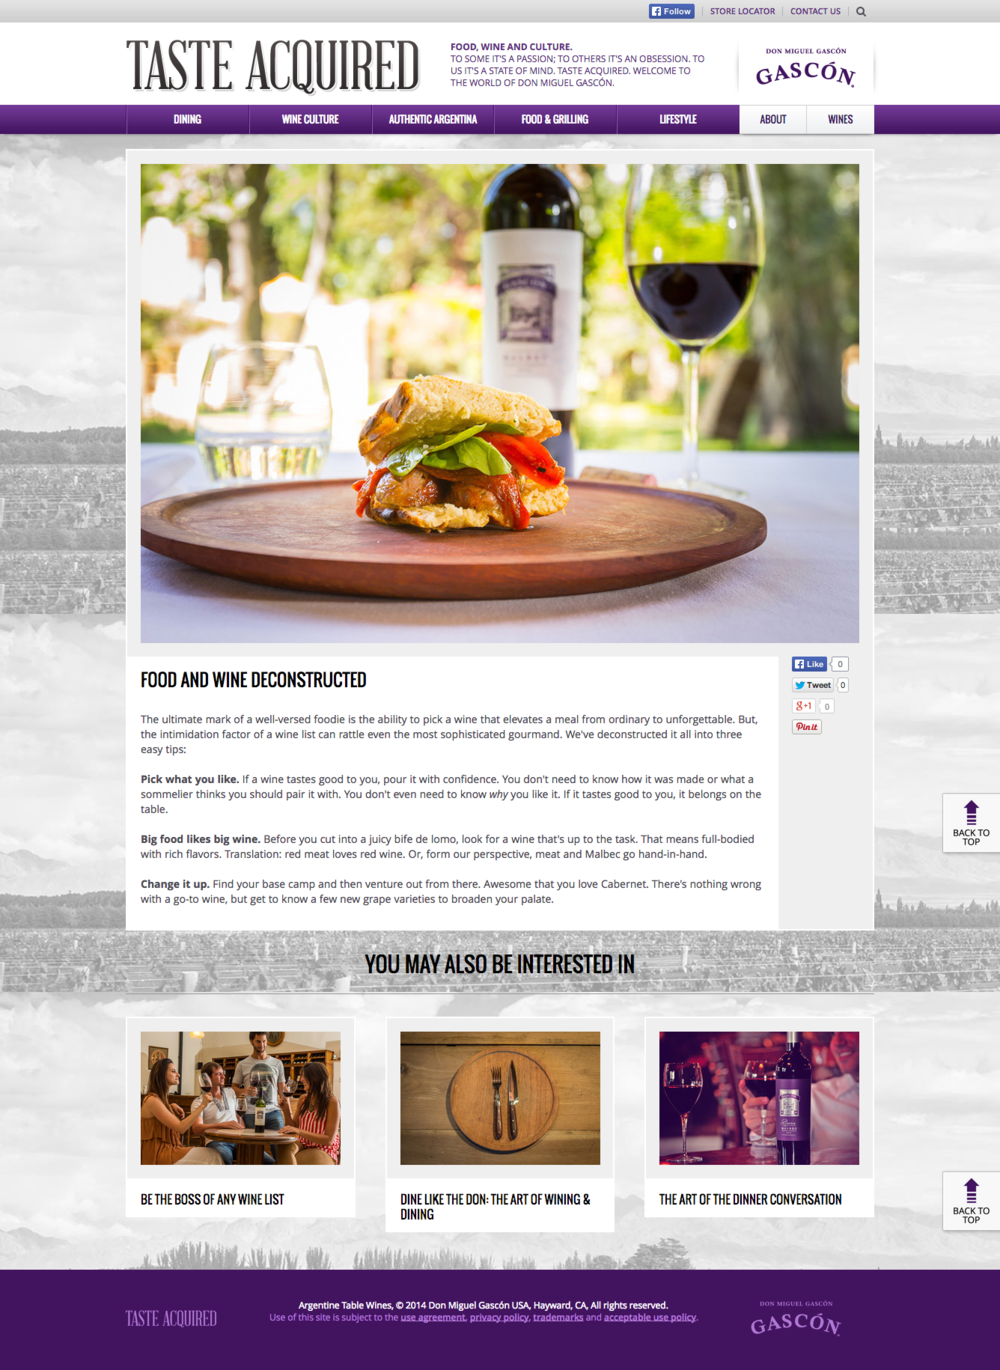 screencapture-www-gasconwine-com-Dining-food-wine-pairing-tips-php.png